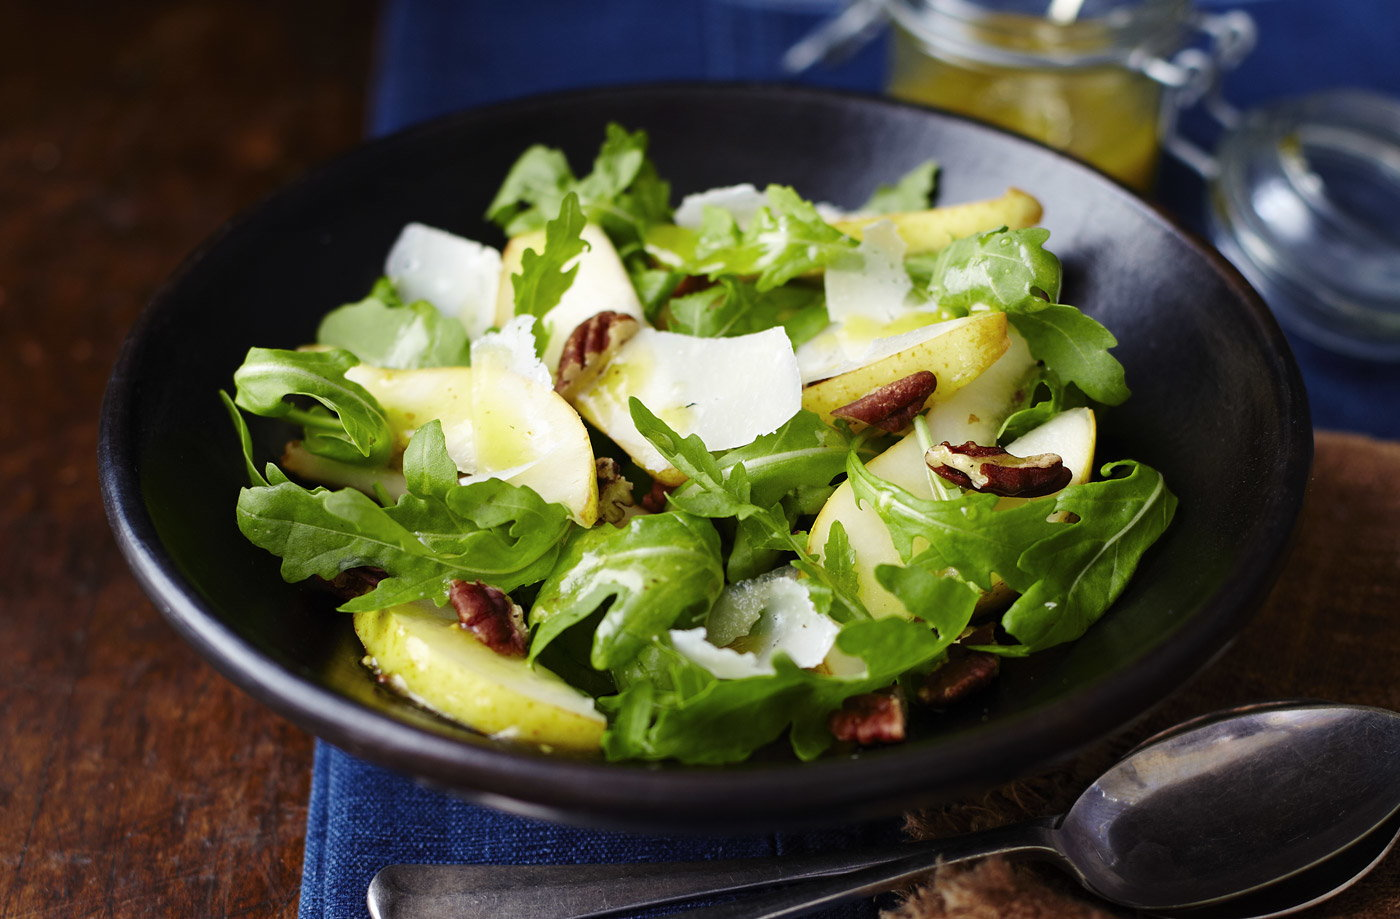 Tesco Finest shaved parmesan, pear, pecan and rocket salad with a honey-mustard dressing